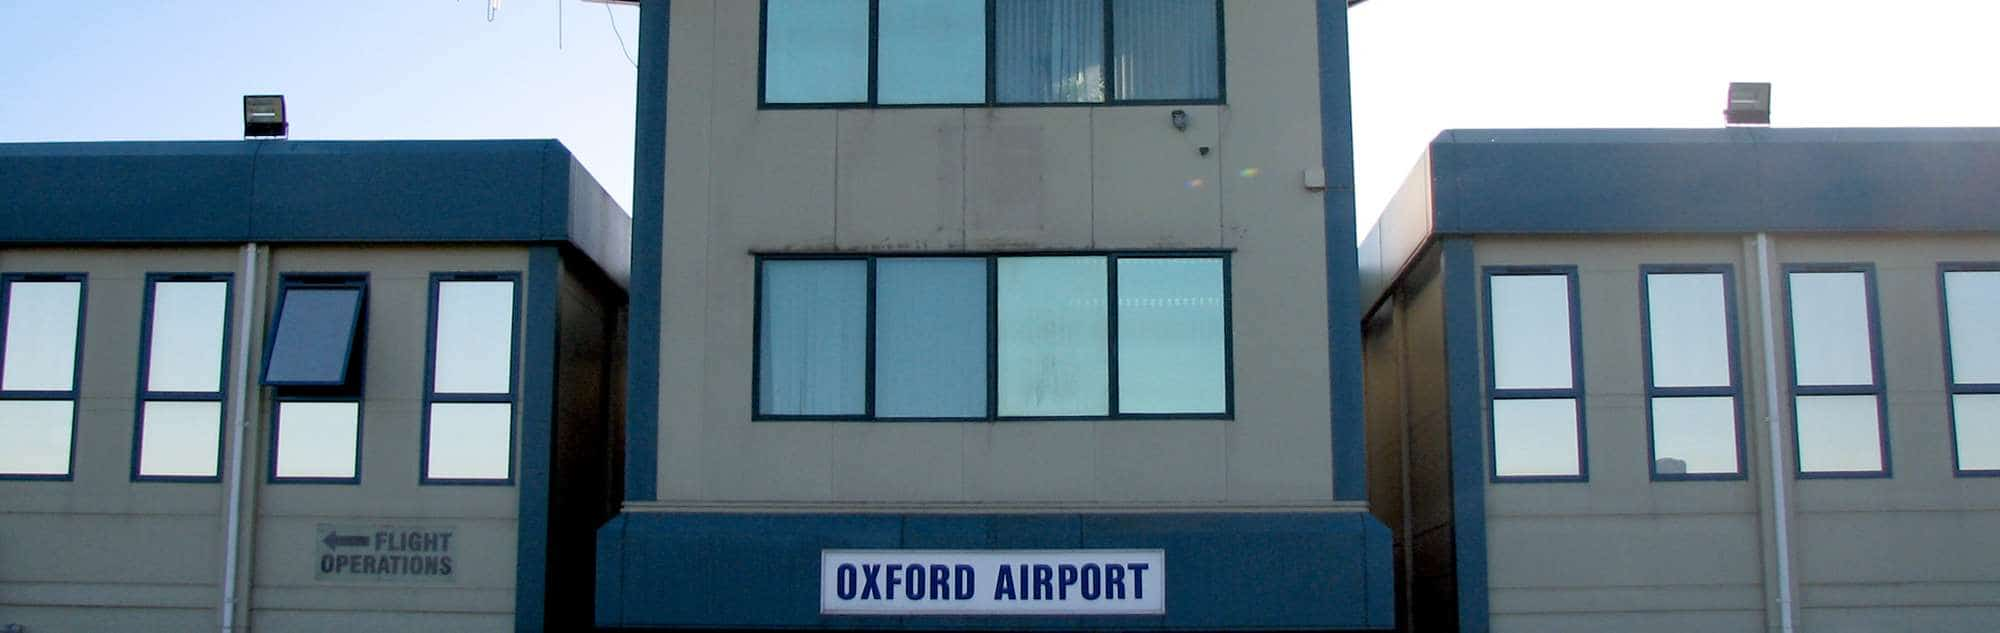 Airport oxford